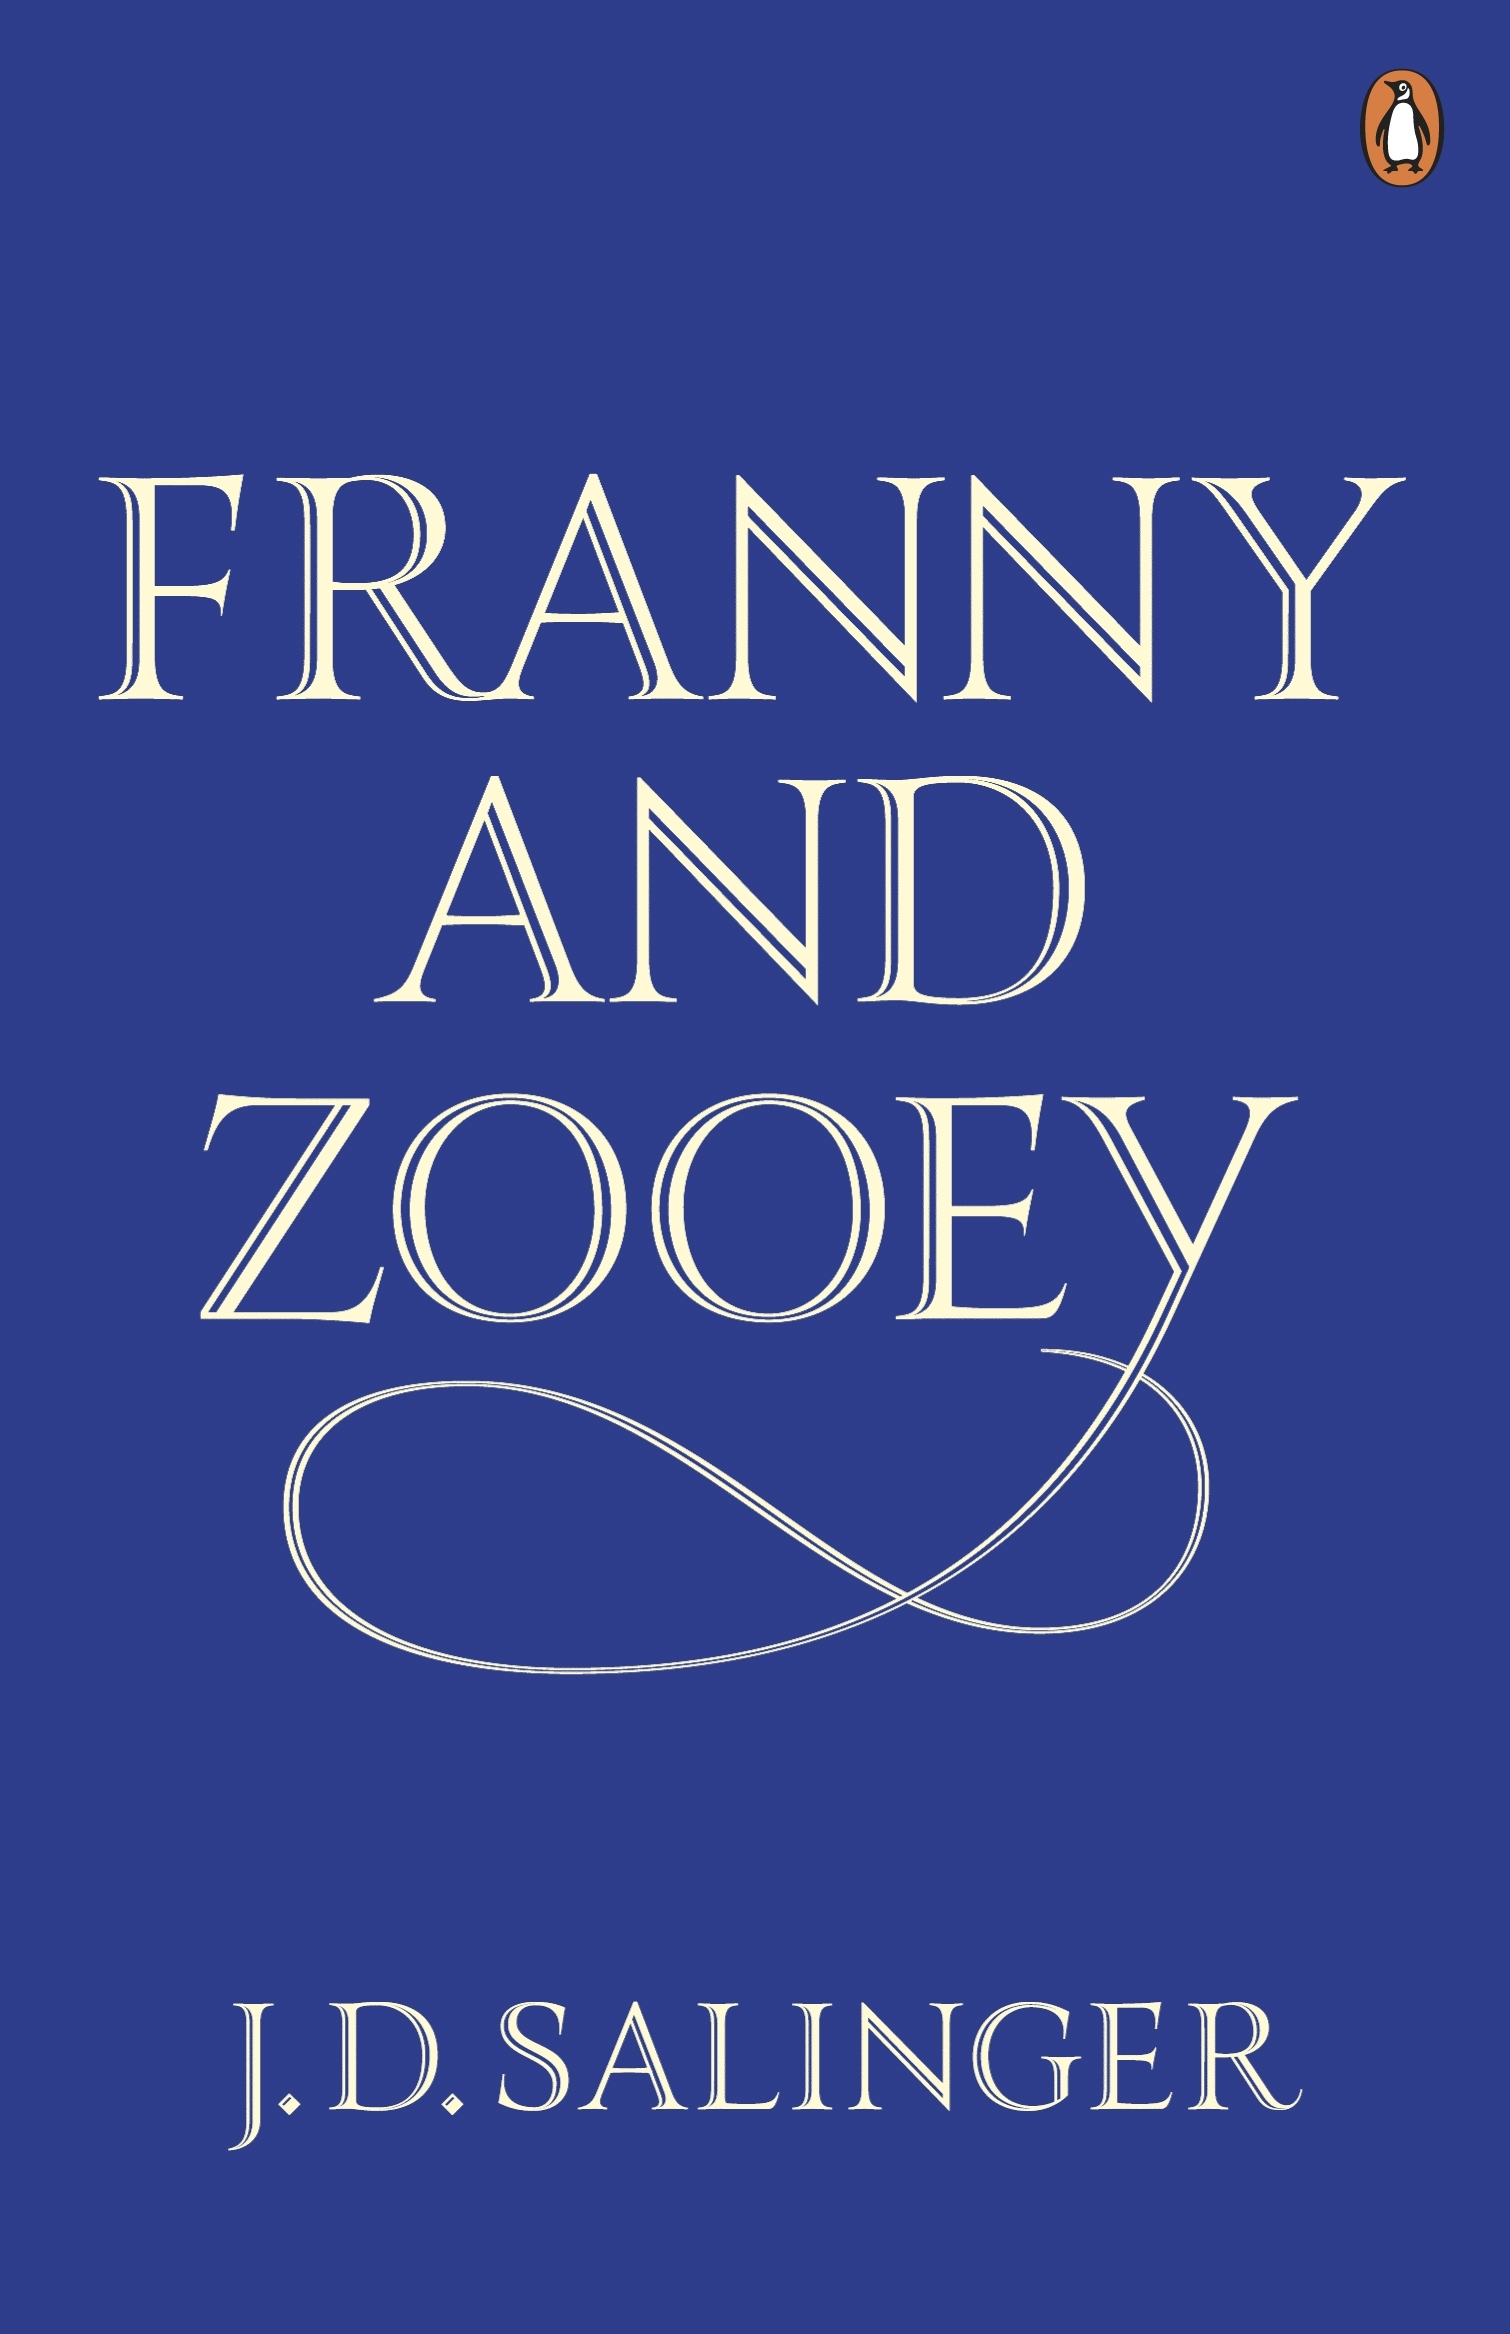 the importance of education in franny and zooey by j d salinger Today marks the 95th anniversary of jd salinger's birth  the famously  reclusive author, known for penning the catcher in the rye and franny and  zooey, has  we felt that were reading something relevant and important   advice from a worried man who understands what formal education doesn't.